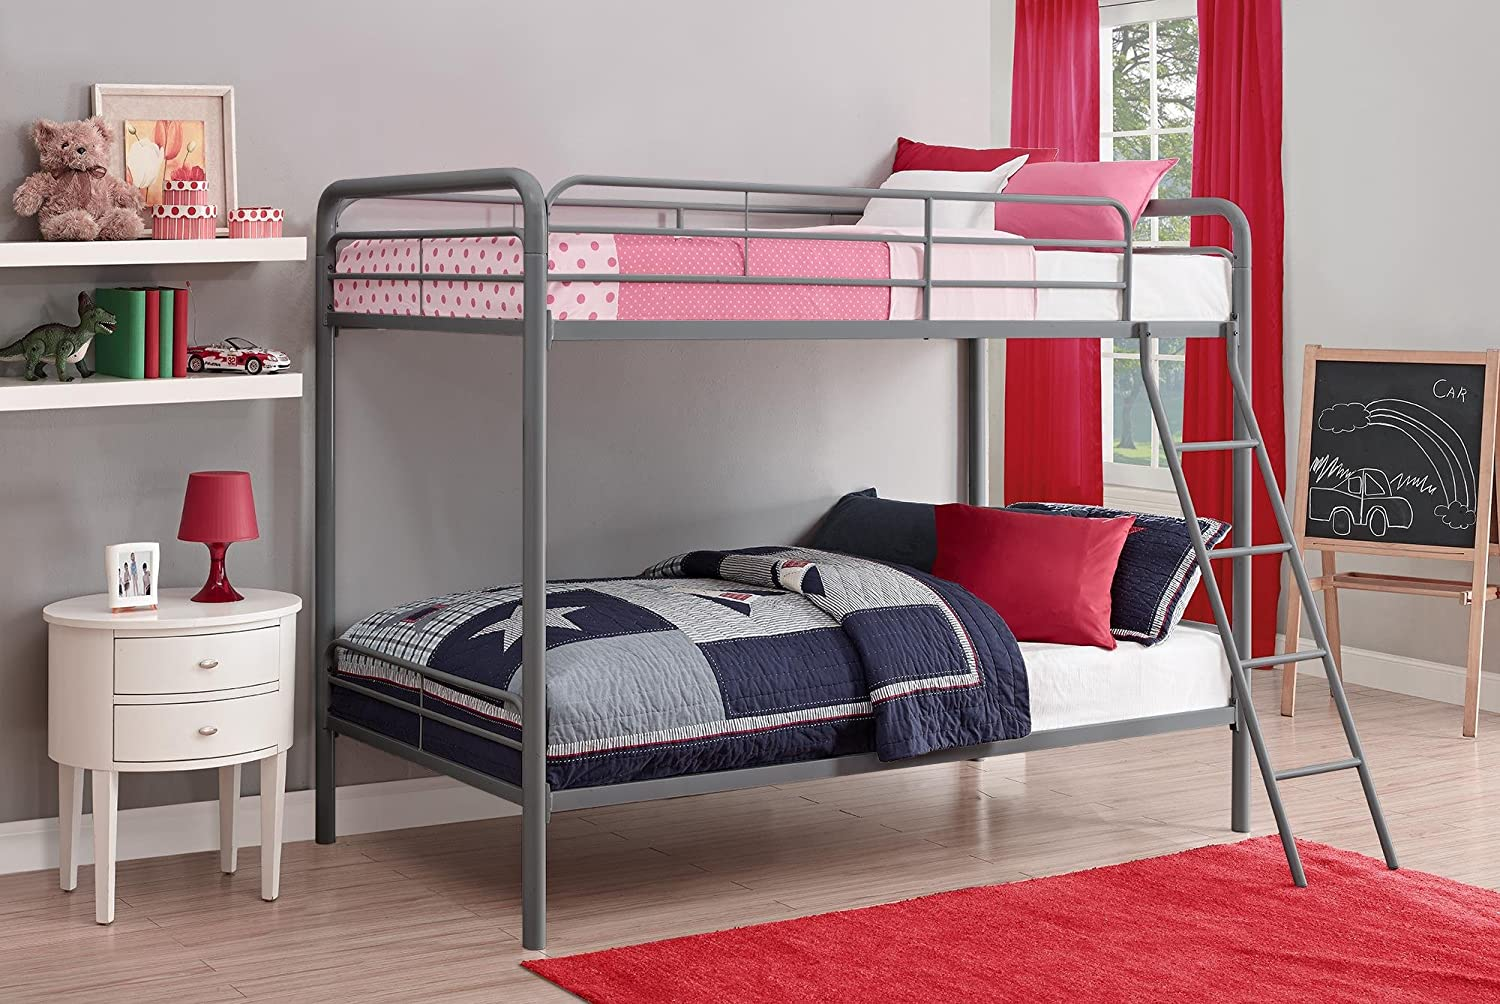 Amazoncom DHP TwinOverTwin Bunk Bed with Metal Frame and Ladder